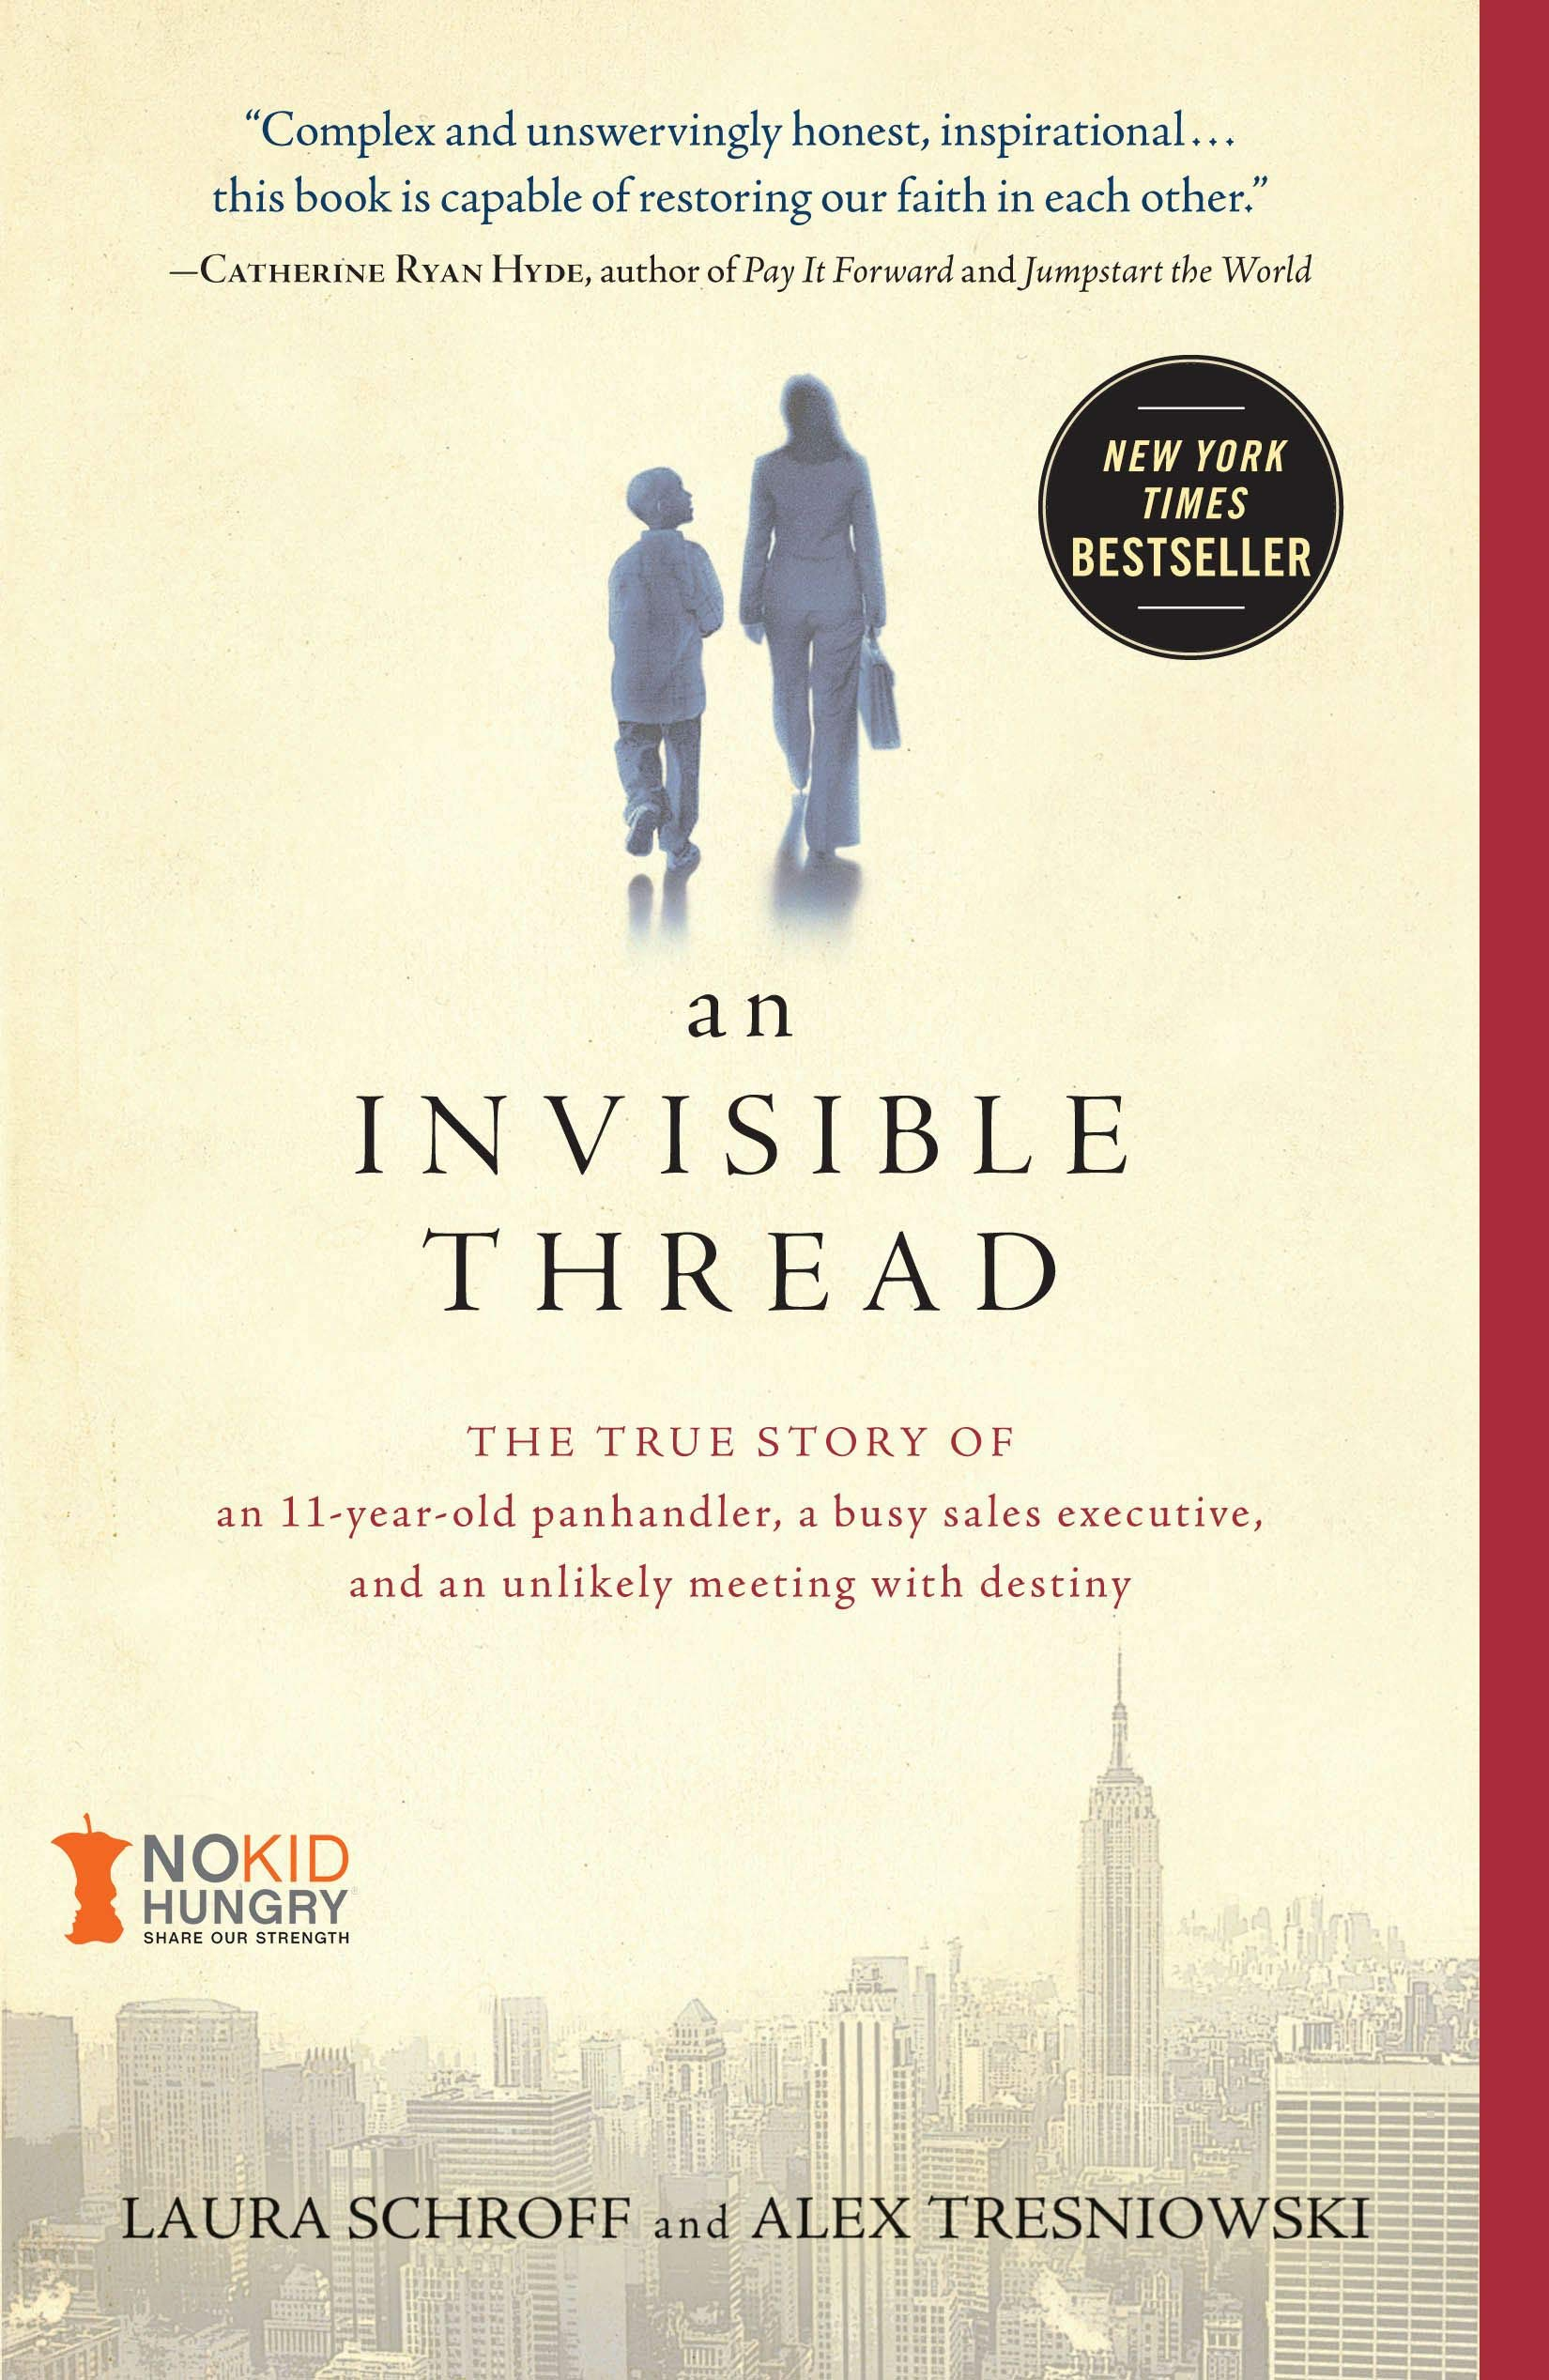 An Invisible Thread: The True Story of an 11-Year-Old Panhandler, a Busy Sales Executive, and an Unlikely Meeting with…